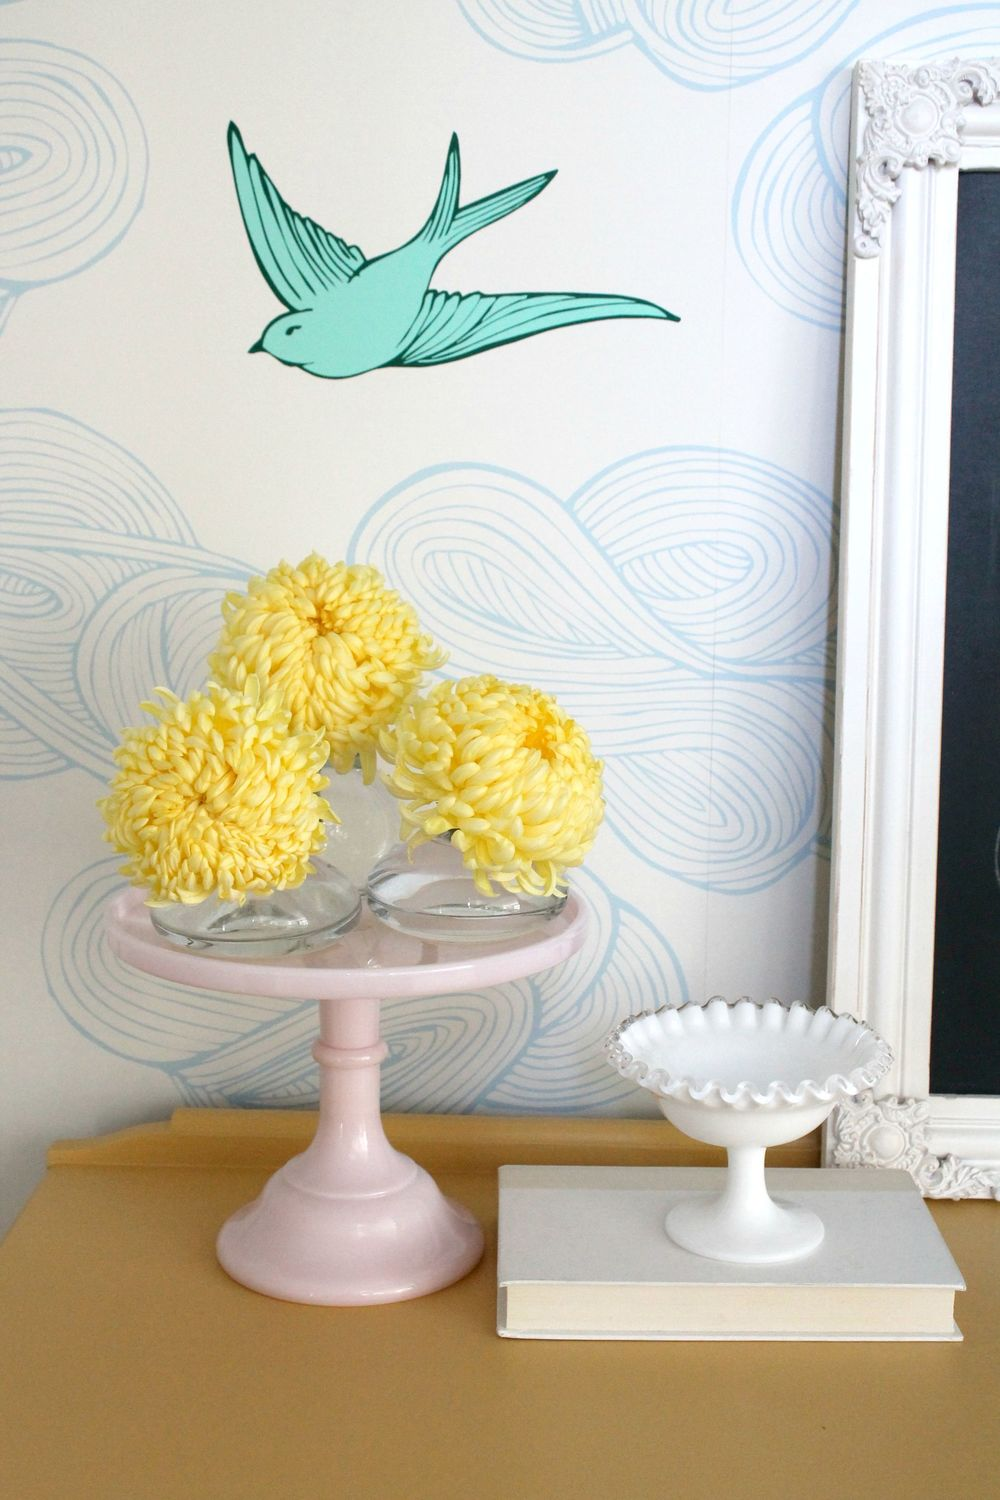 Cheery nook with wallpaper, bud vases, cake plate and ruffled bowl